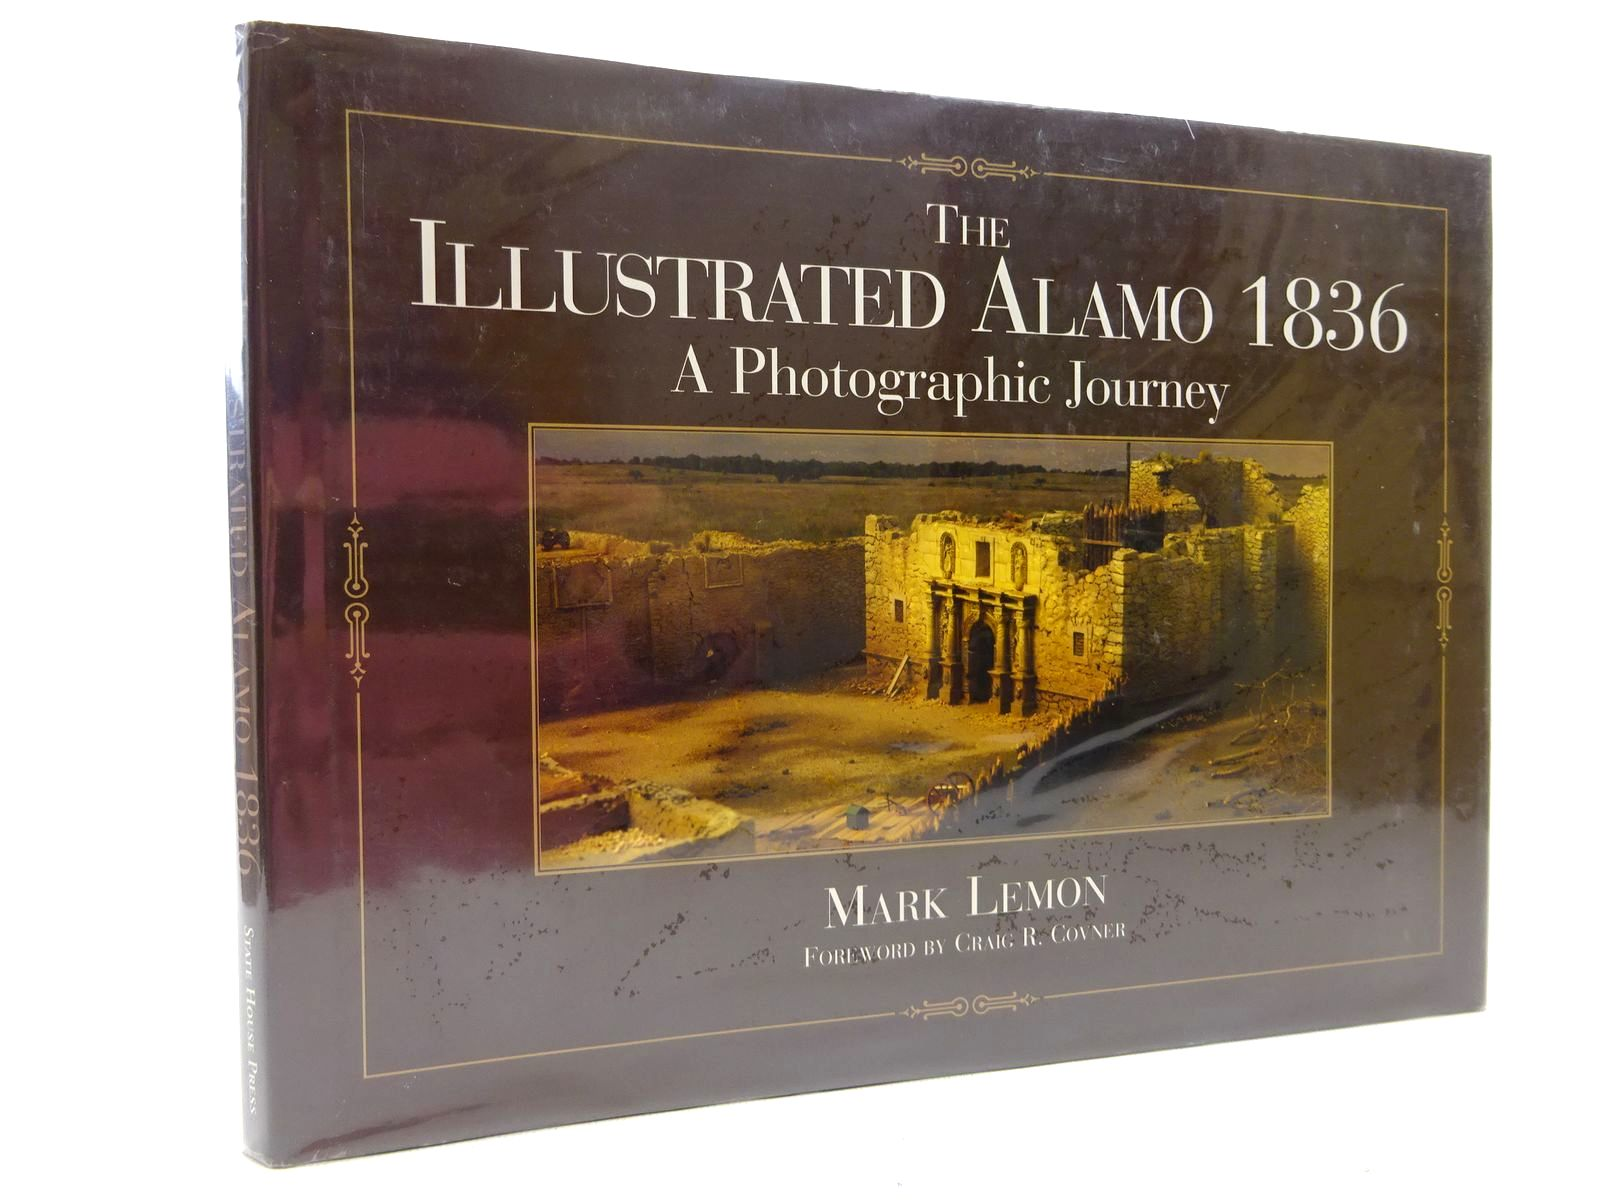 Photo of THE ILLUSTRATED ALAMO 1836 A PHOTOGRAPHIC JOURNEY written by Lemon, Mark published by State House Press (STOCK CODE: 2129105)  for sale by Stella & Rose's Books